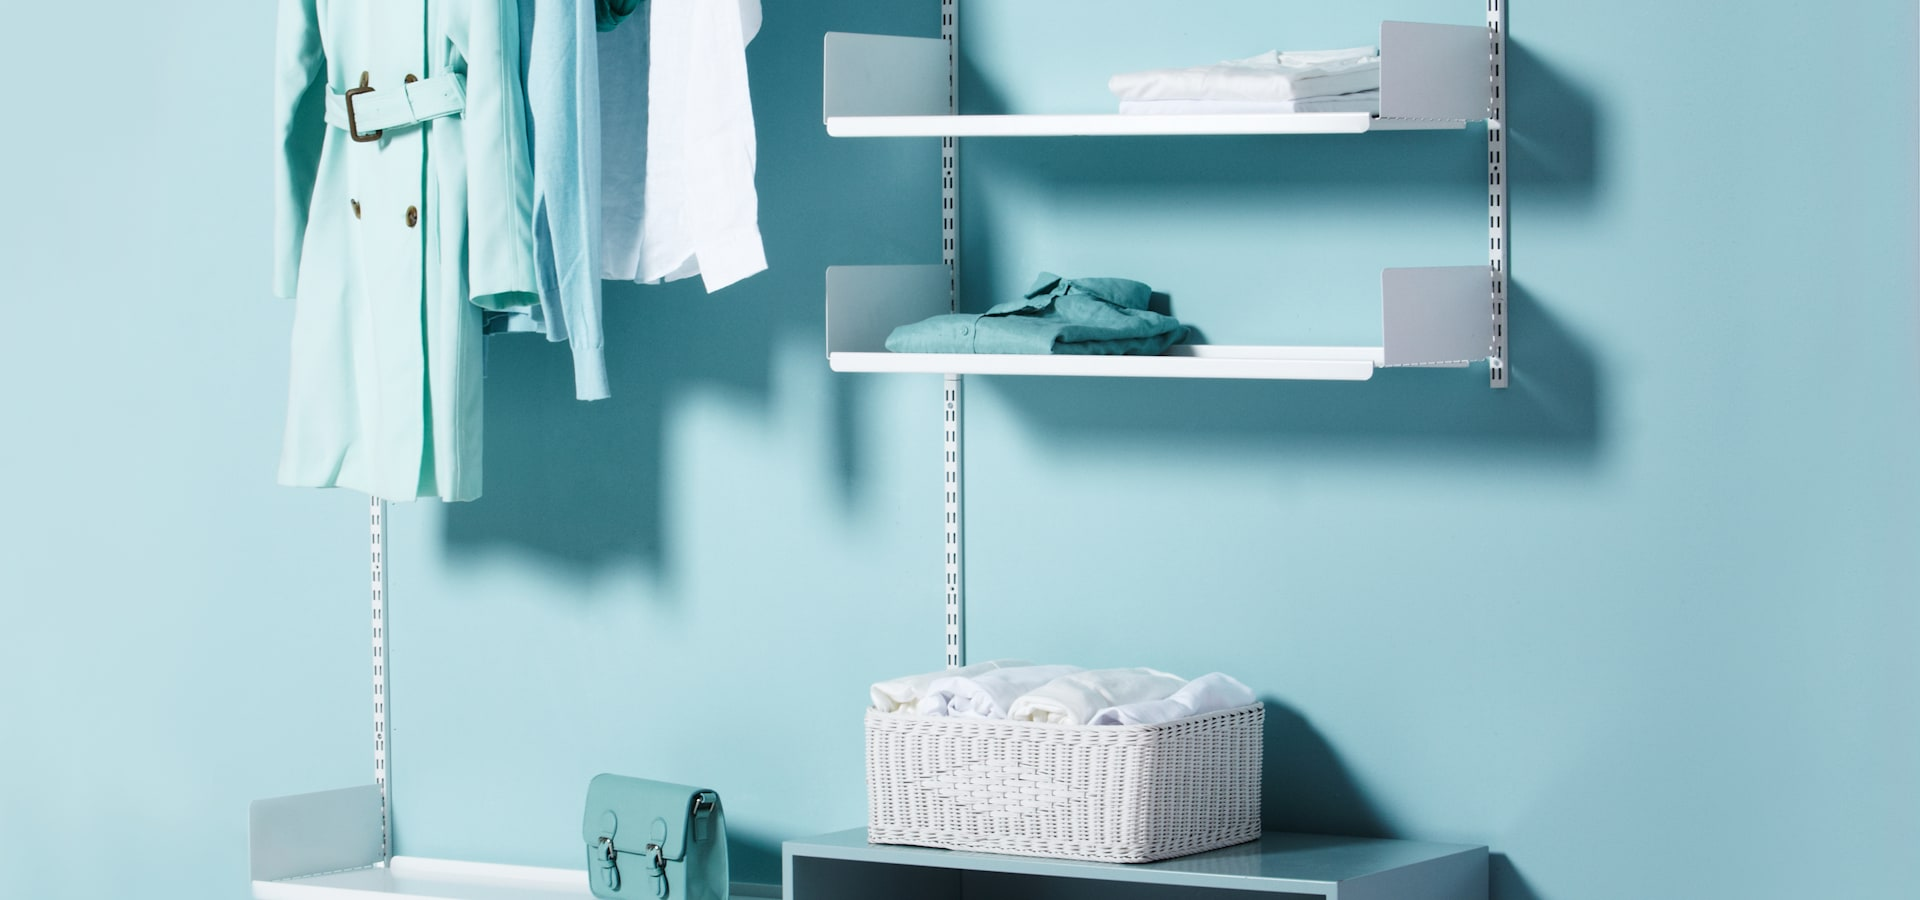 Ricavare Una Cabina Armadio floating shelving_open dressroom solution by the thing